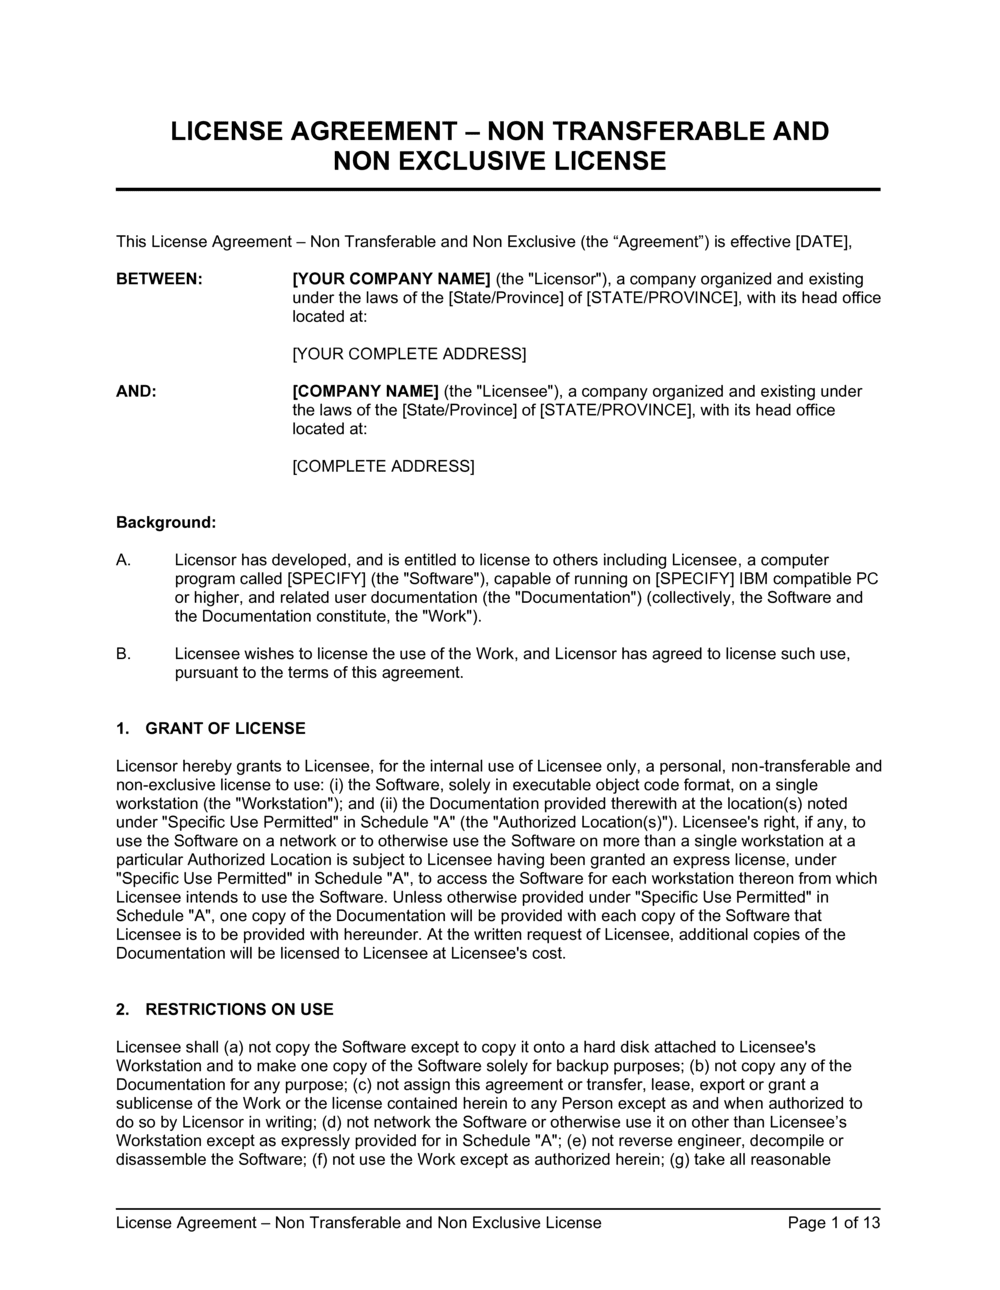 Business-in-a-Box's License Agreement NonTransferable and Non Exclusive License Template